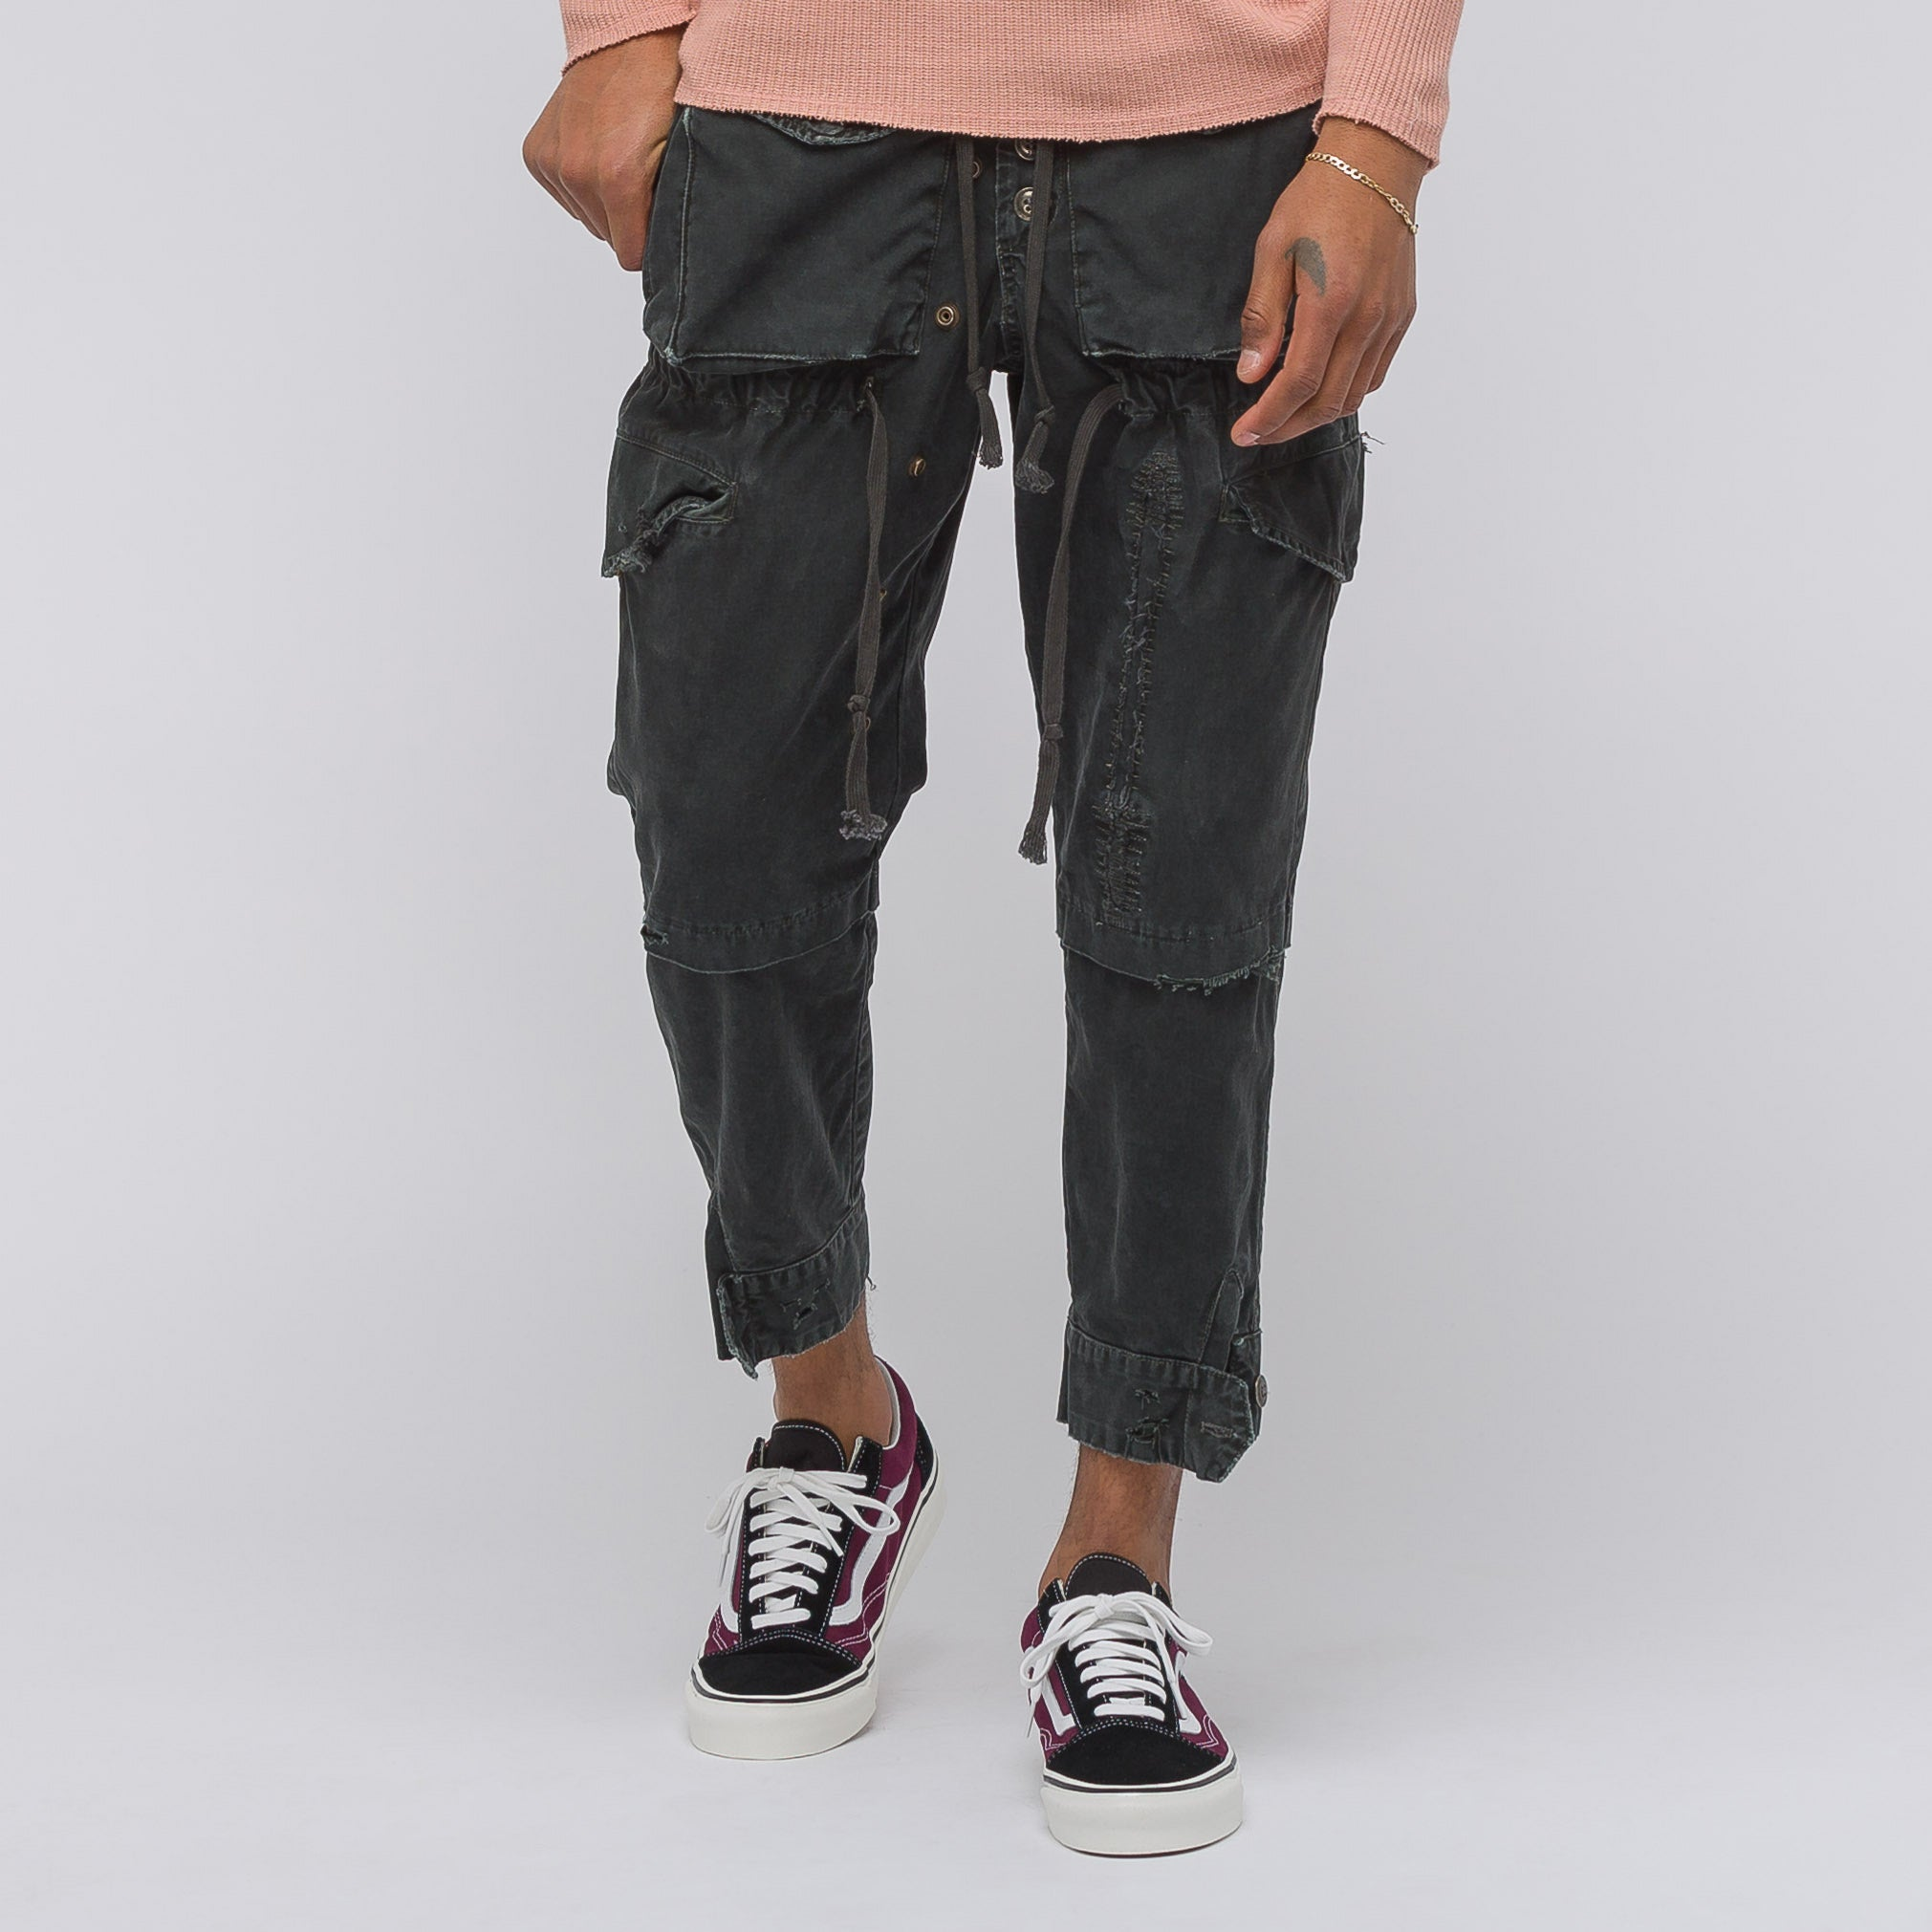 GL Cargo Lounge Pant in Black Boat Sateen